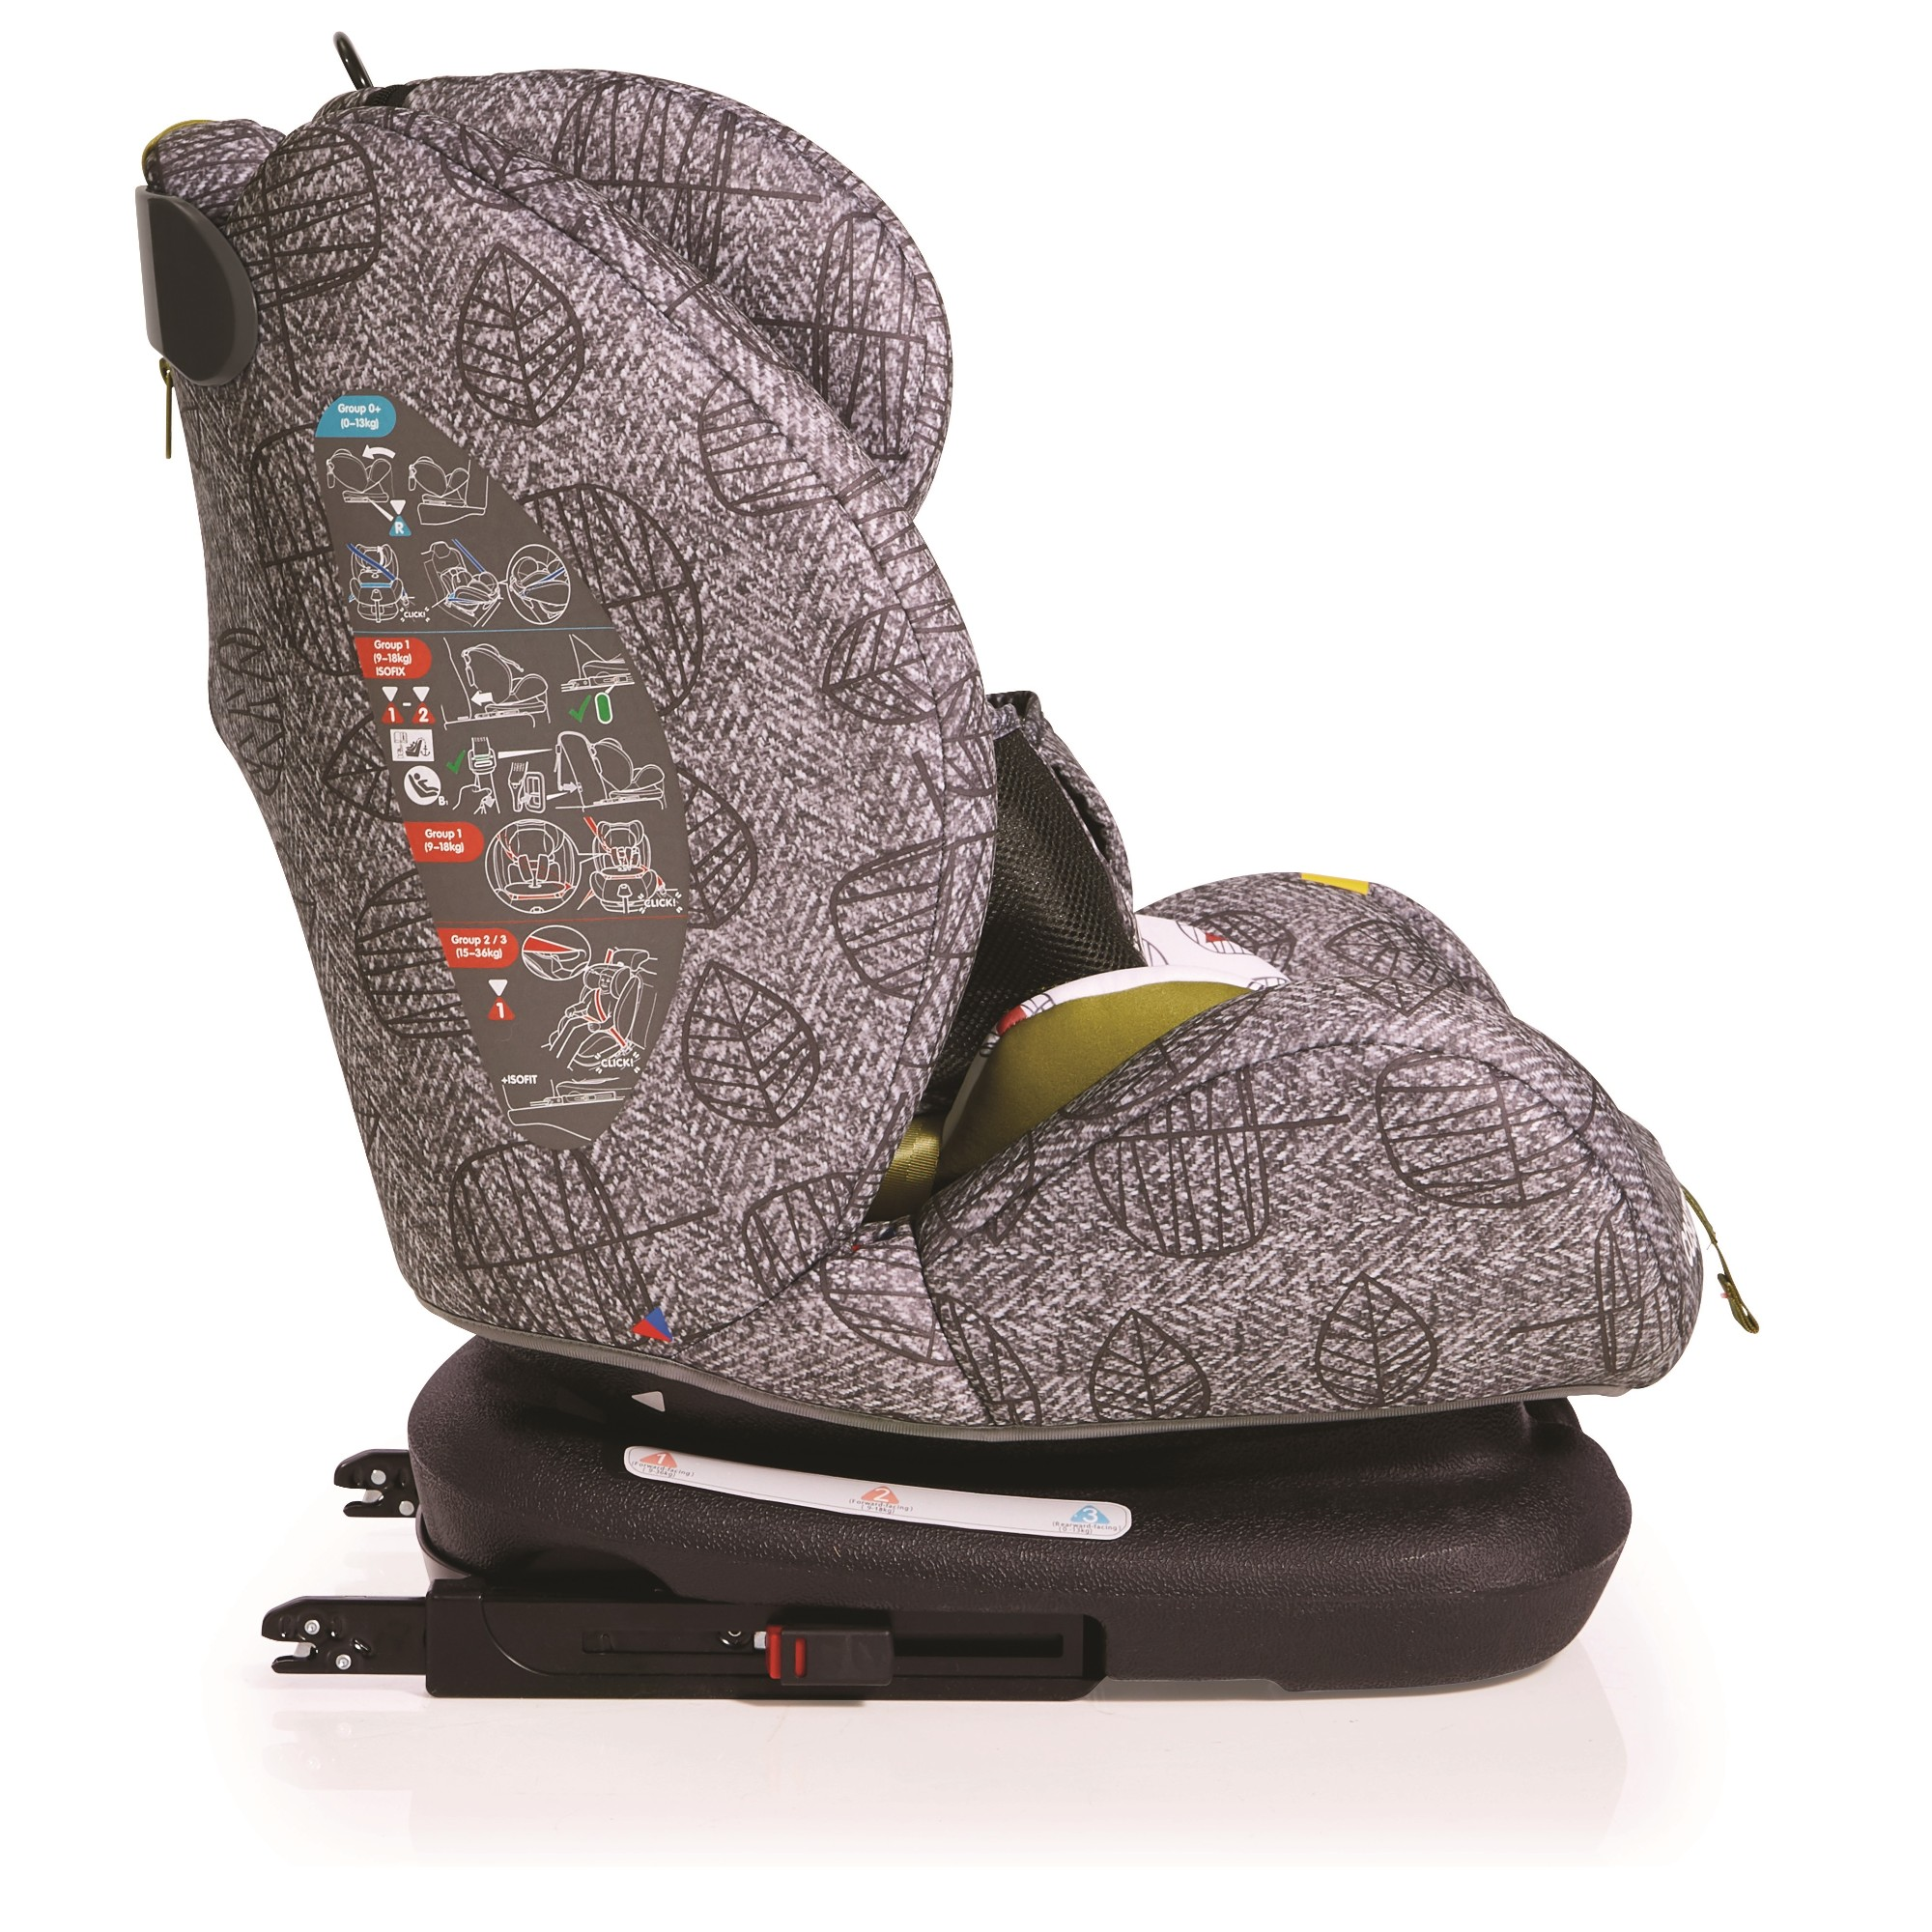 Infant Carrier Travel Cosatto Hold Rev Up Car Safety Seat From Birth 0